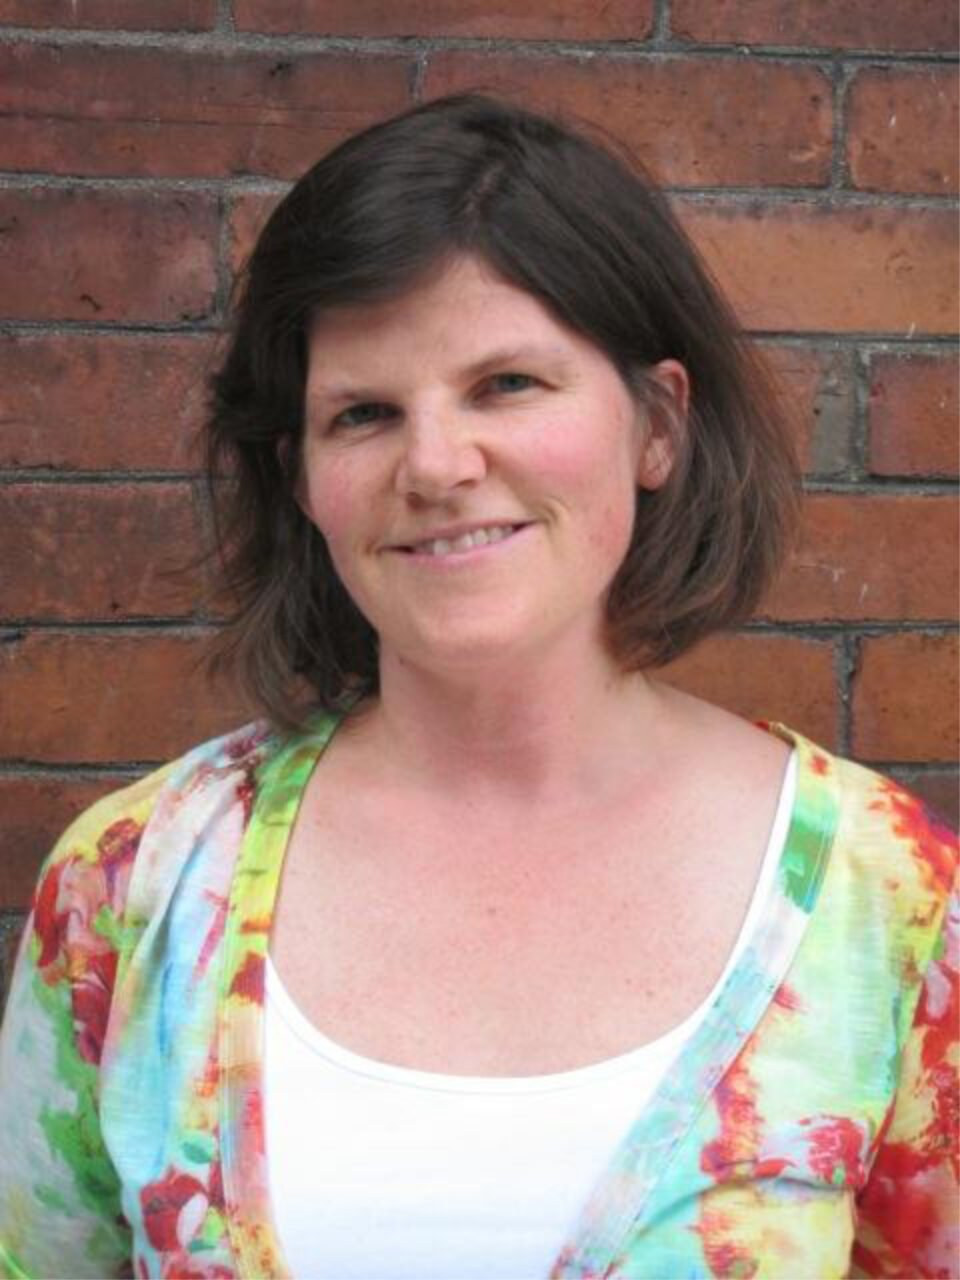 Back to School message from OSMH paediatrician Dr. Sarah Barker